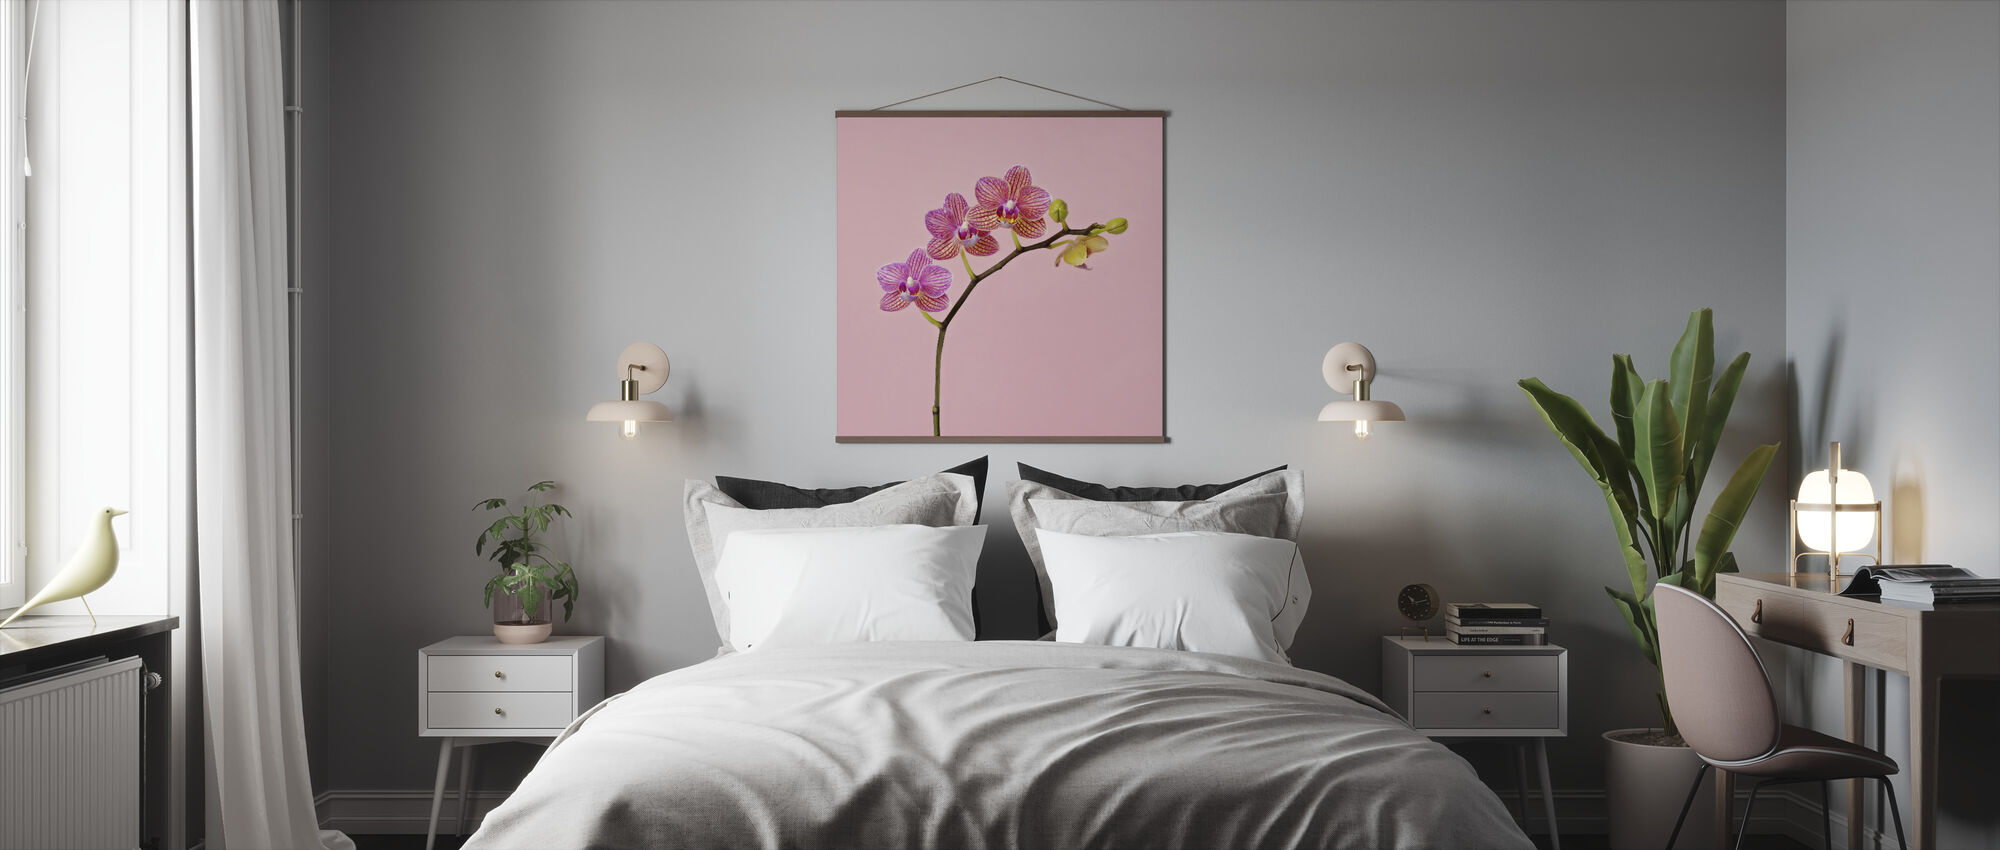 Pink Orchid - Poster - Bedroom